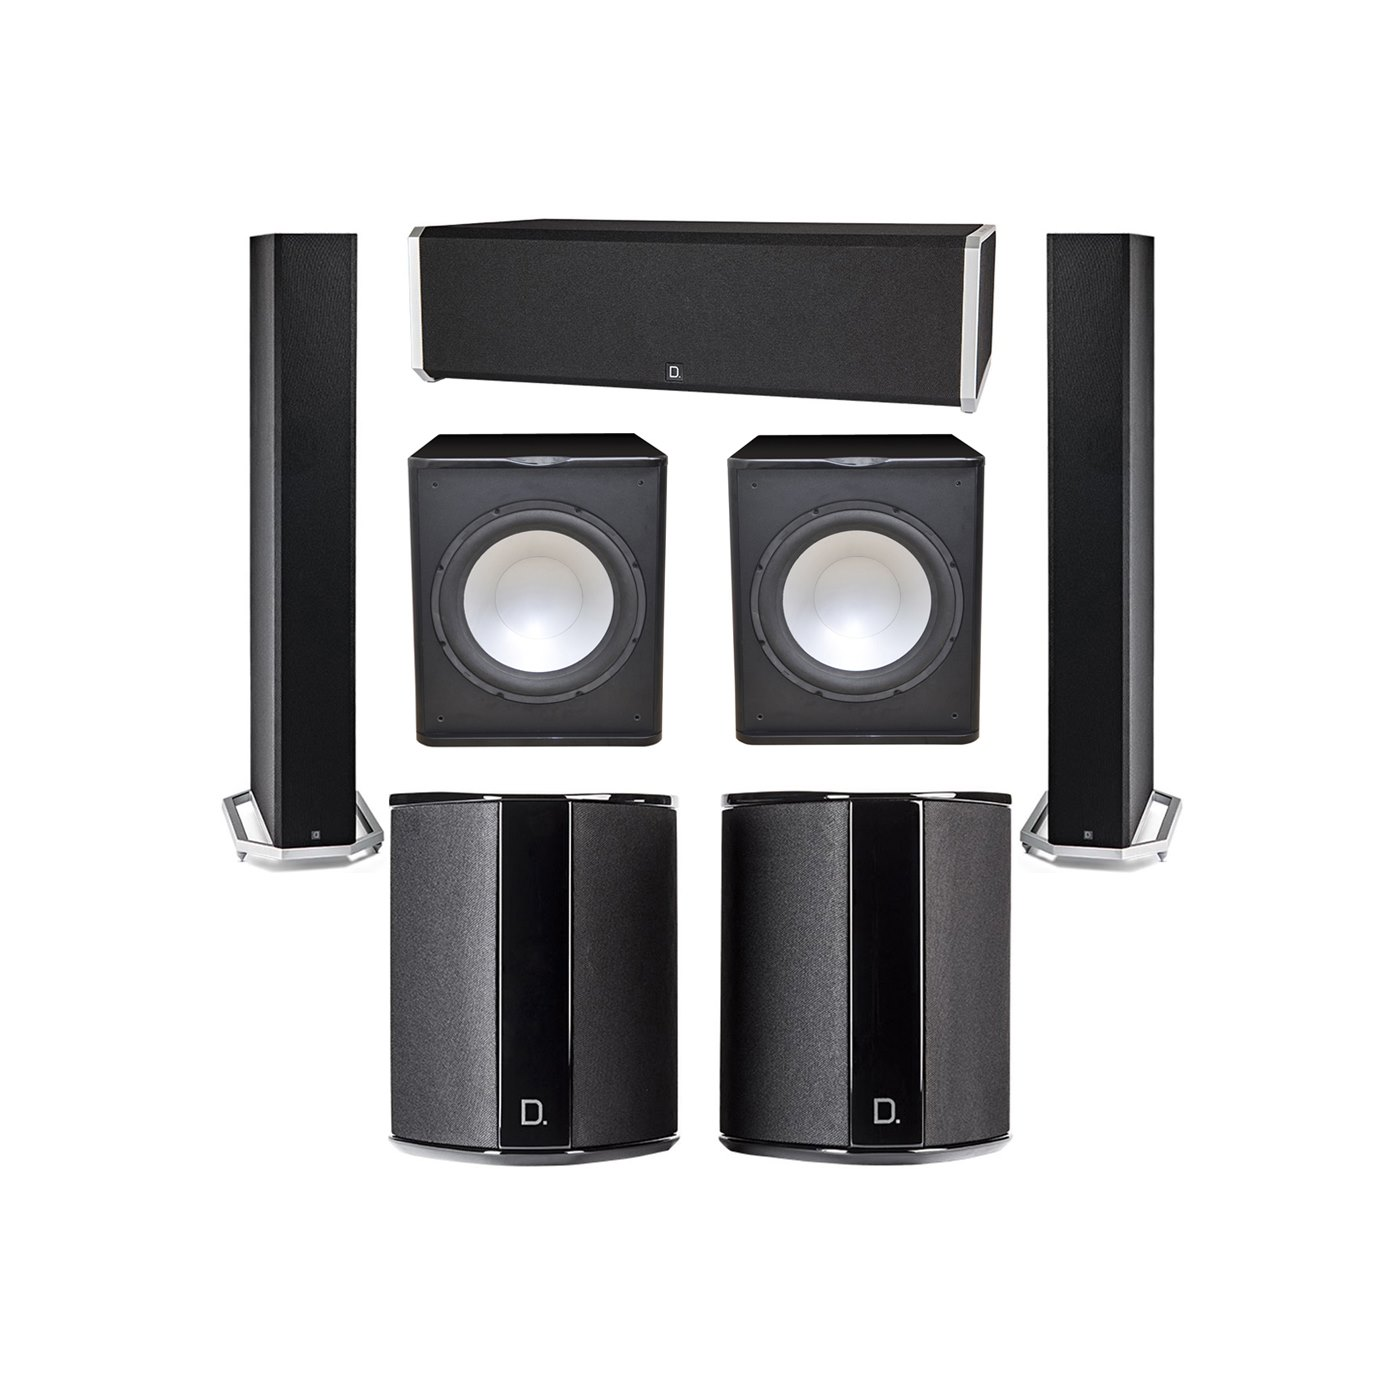 Definitive Technology 5.2 System with 2 BP9060 Tower Speakers, 1 CS9040 Center Channel Speaker, 2 SR9040 Surround Speaker, 2 Premier Acoustic PA-150 Subwoofer